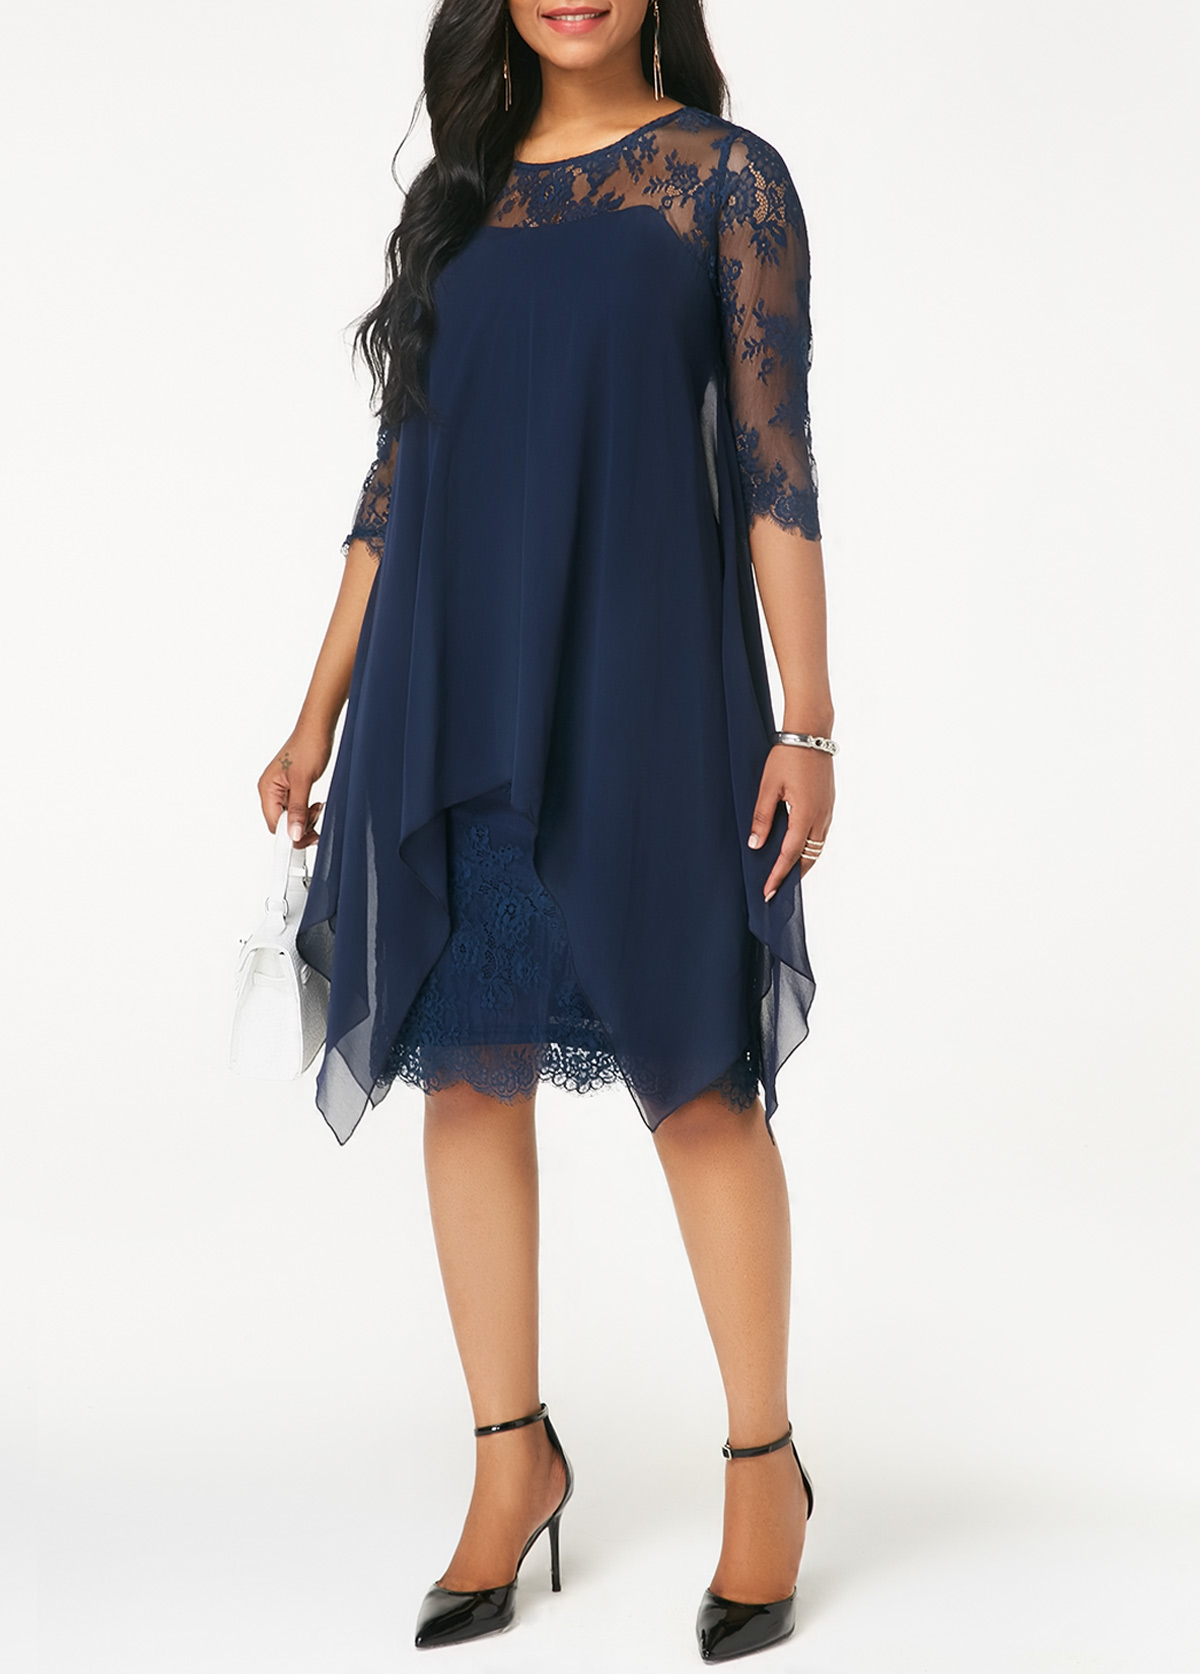 a962f779b2f Navy Three Quarter Sleeve Chiffon Overlay Lace Dress